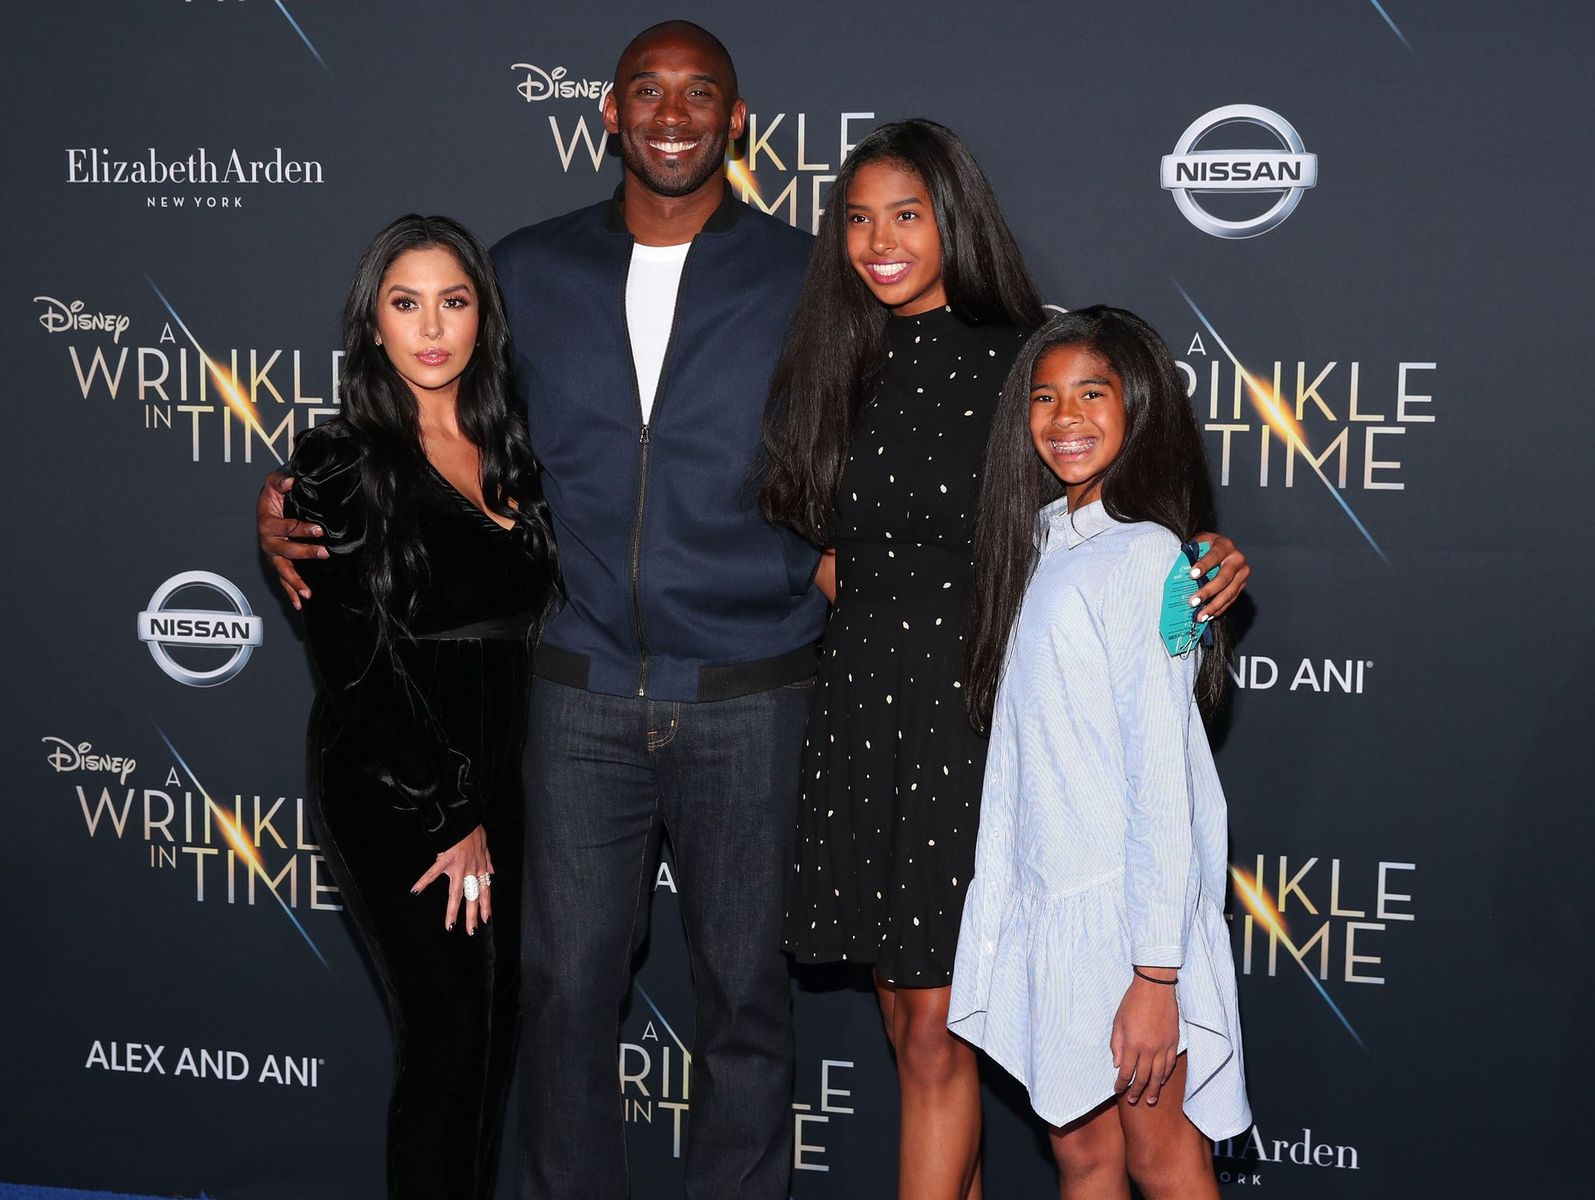 """Vanessa and Kobe Bryant and their children at the premiere of """"A Wrinkle In Time"""" in Los Angeles on February 26, 2018. 